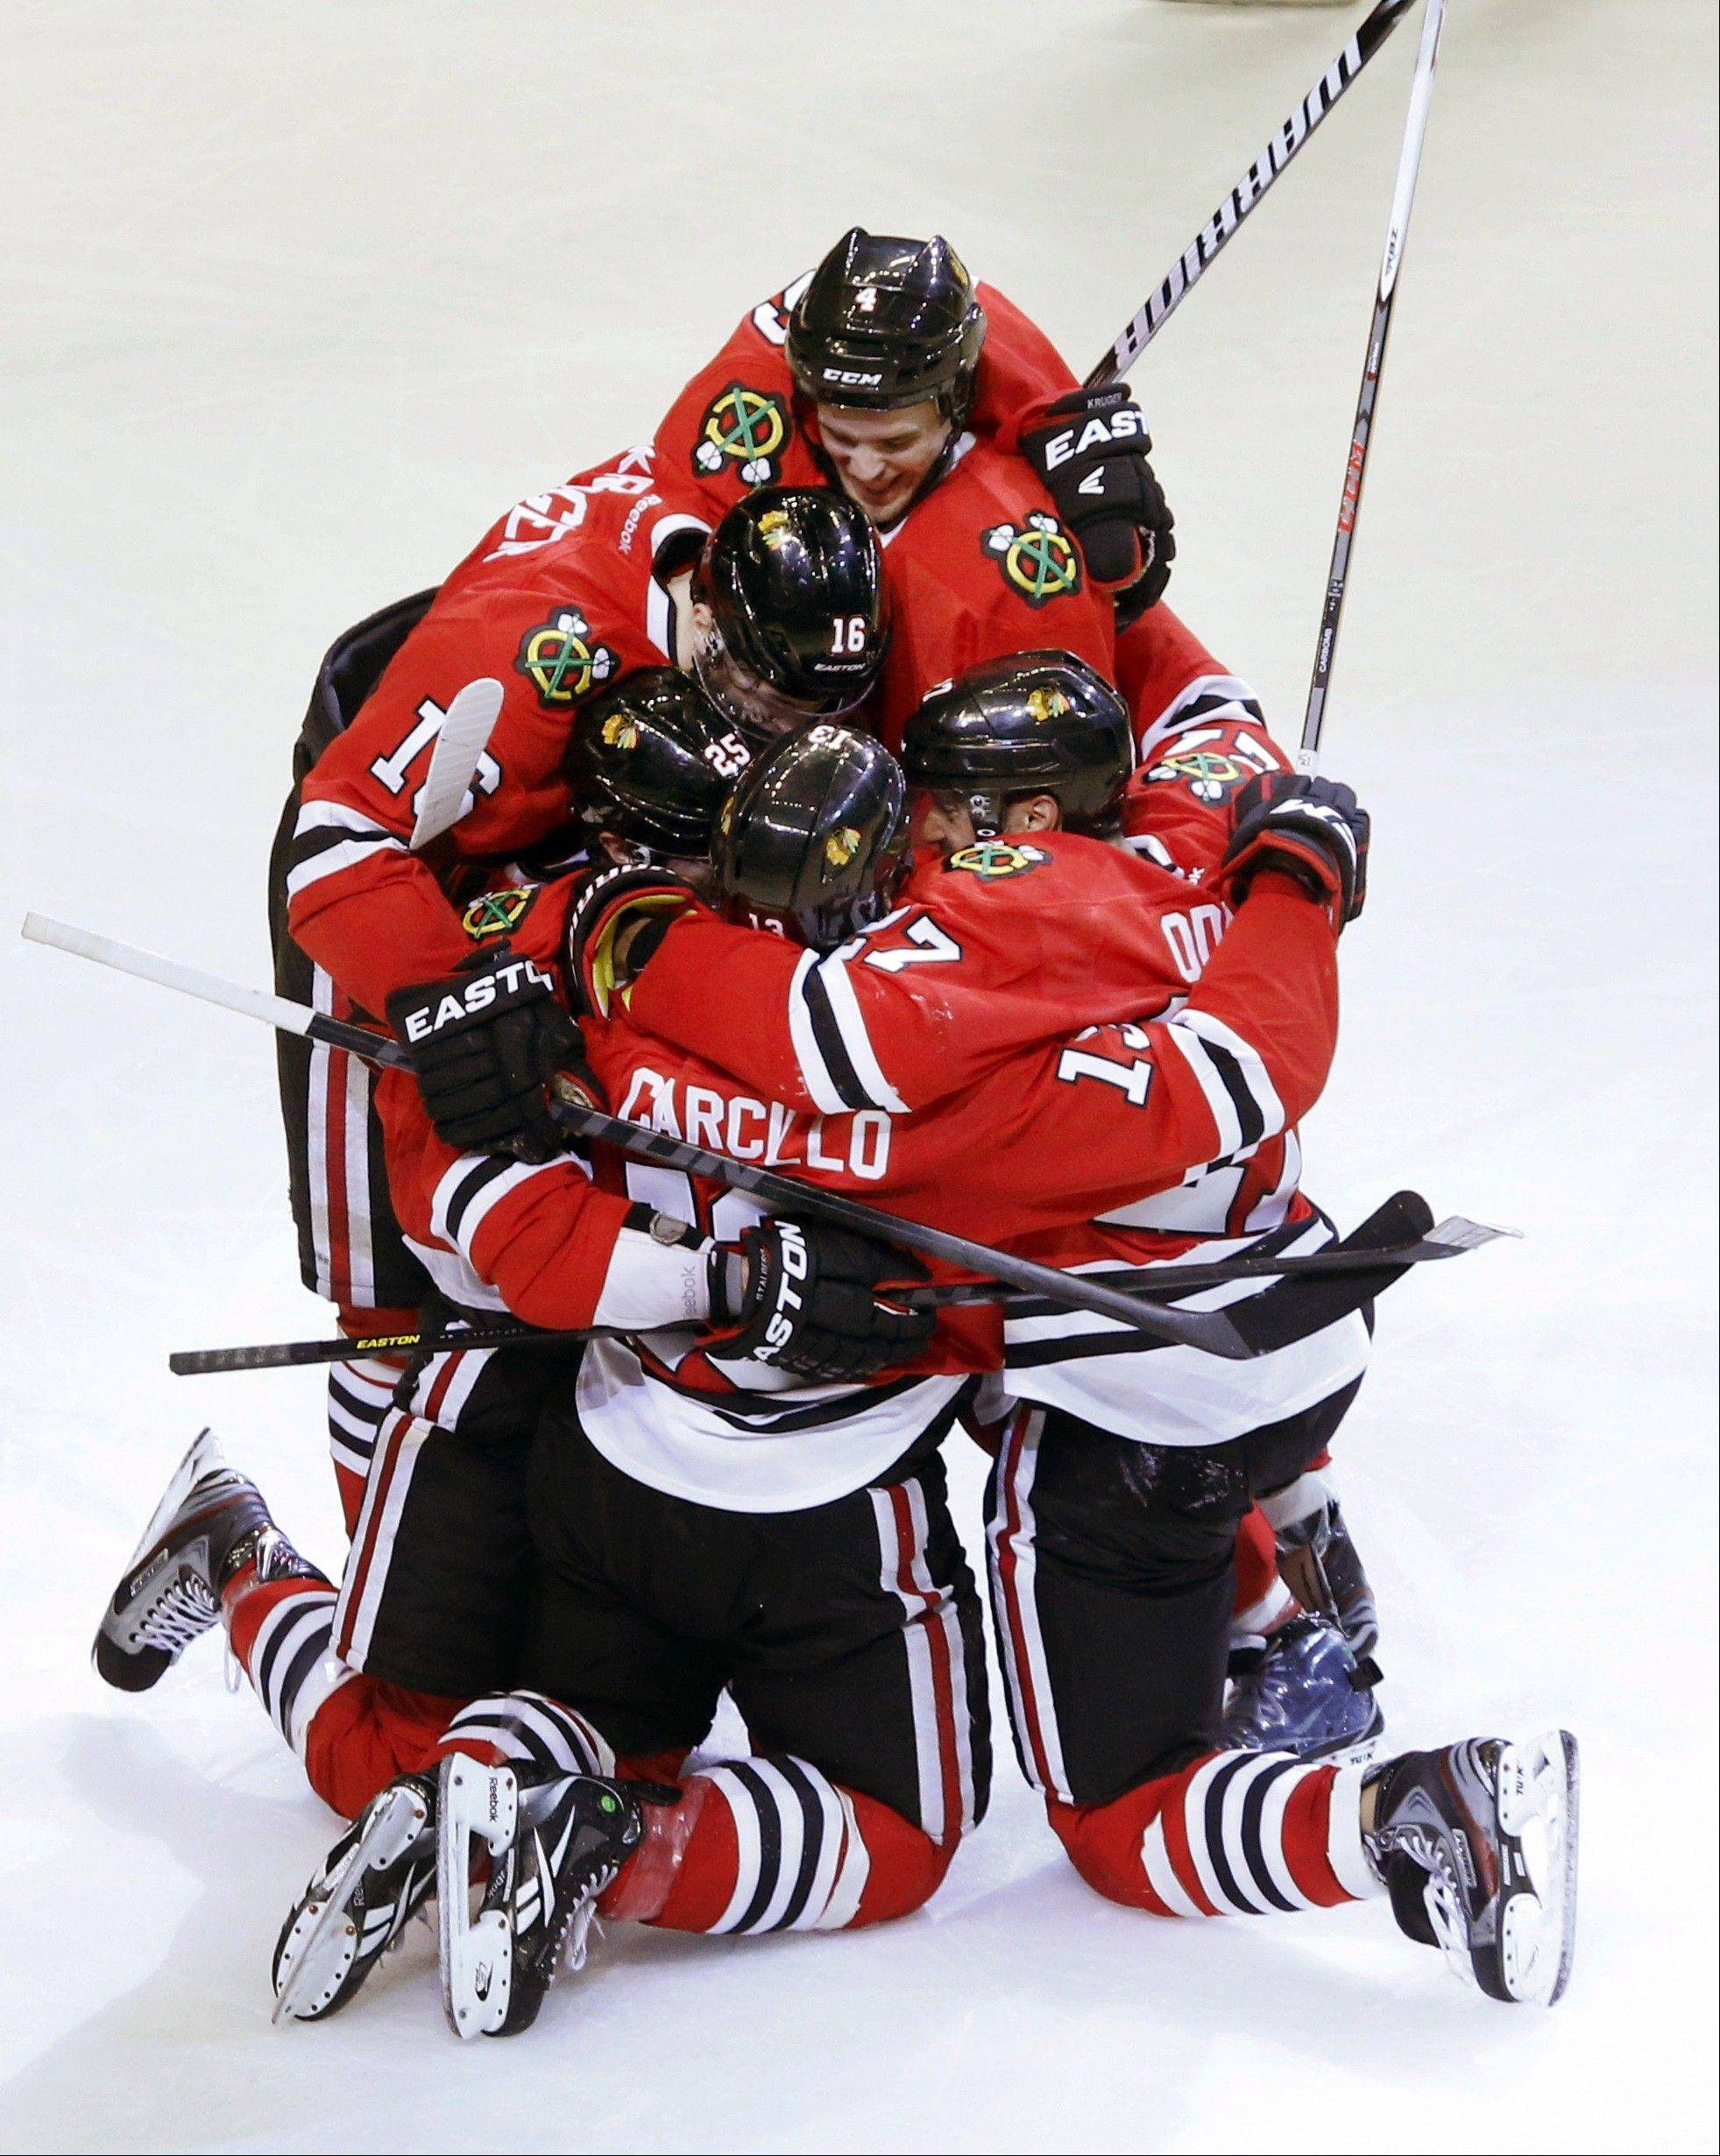 Chicago Blackhawks left wing Daniel Carcillo, bottom center, is mobbed by teammates as they celebrate Carcillo's winning goal during the third period of an NHL hockey game against the Colorado Avalanche, Wednesday, March 6, 2013, in Chicago. The Blackhawks won 3-2.